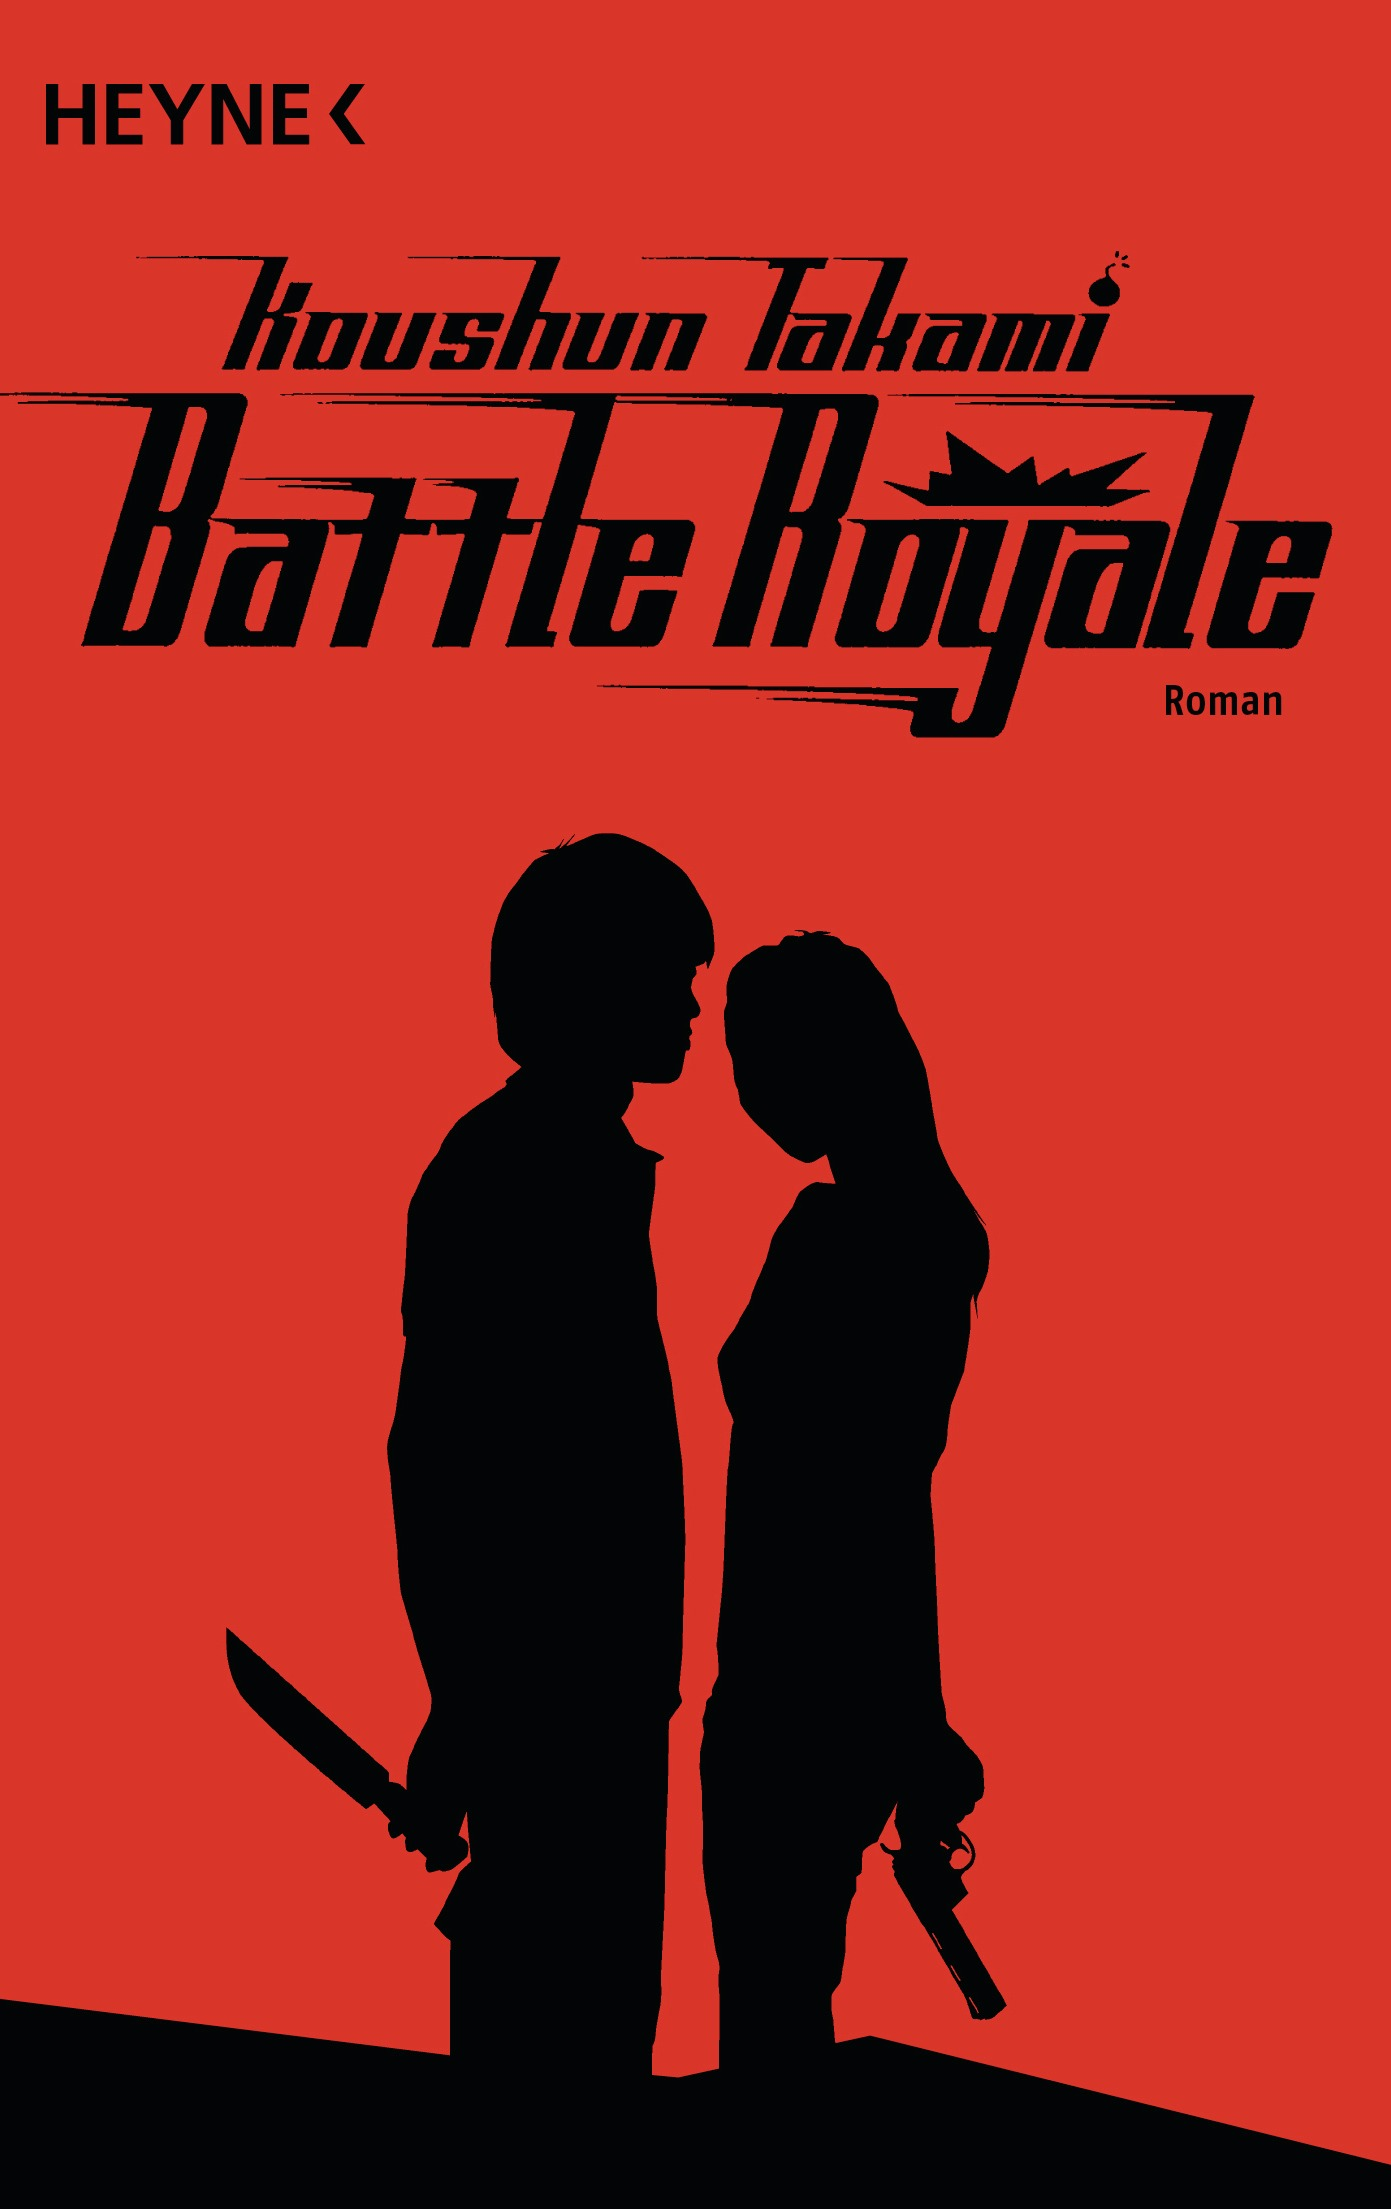 Battle Royale - Koushun Takami